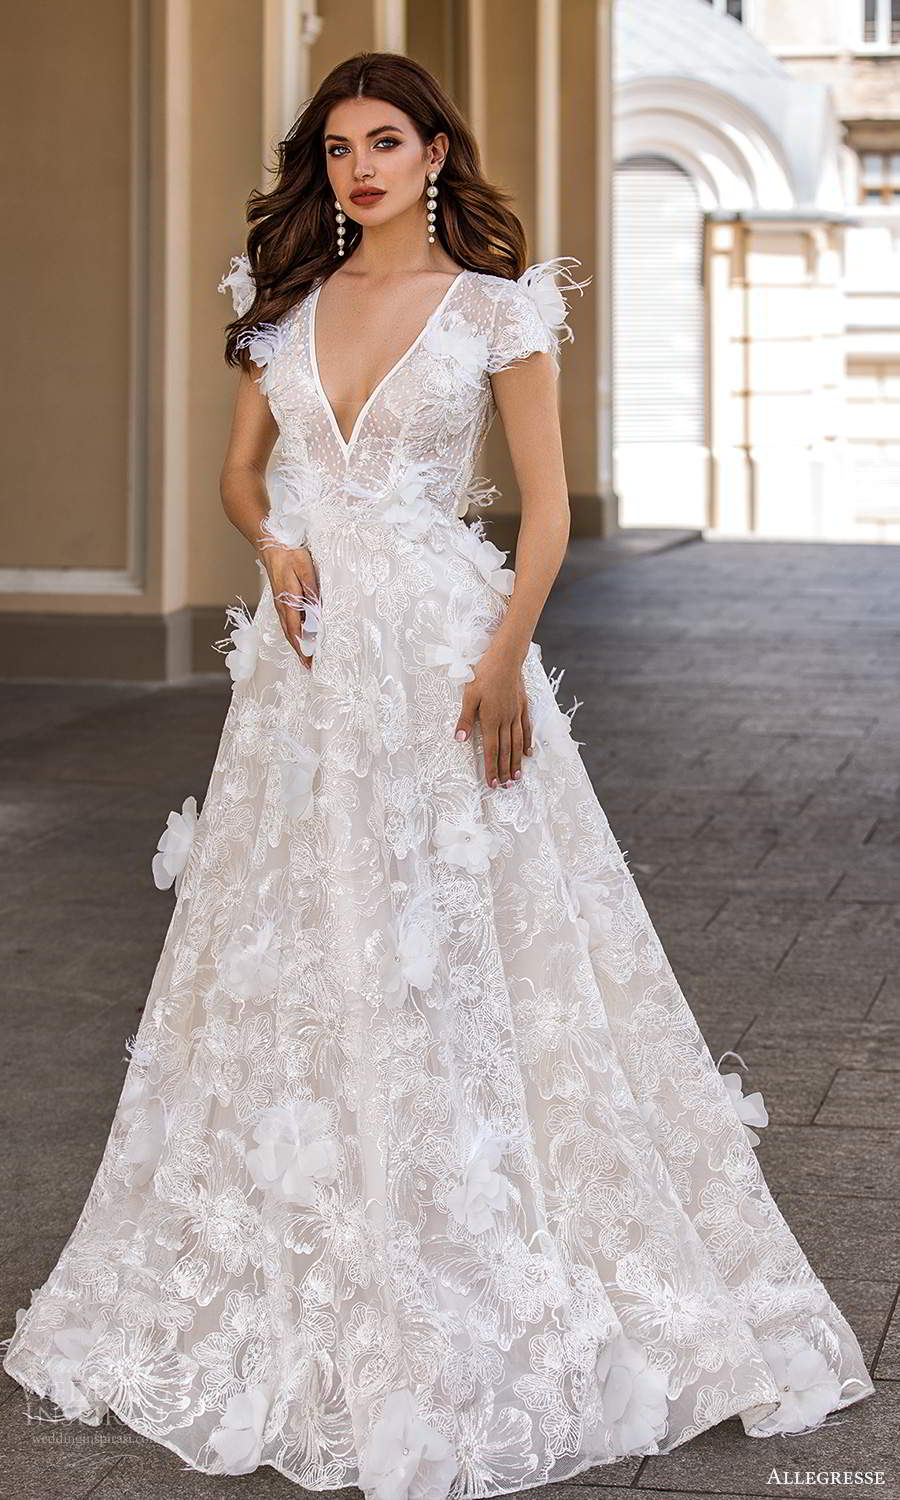 allegresse 2021 bridal short sleeves plunging v neckline fully embellished a line ball gown wedding dress chapel train (10) mv